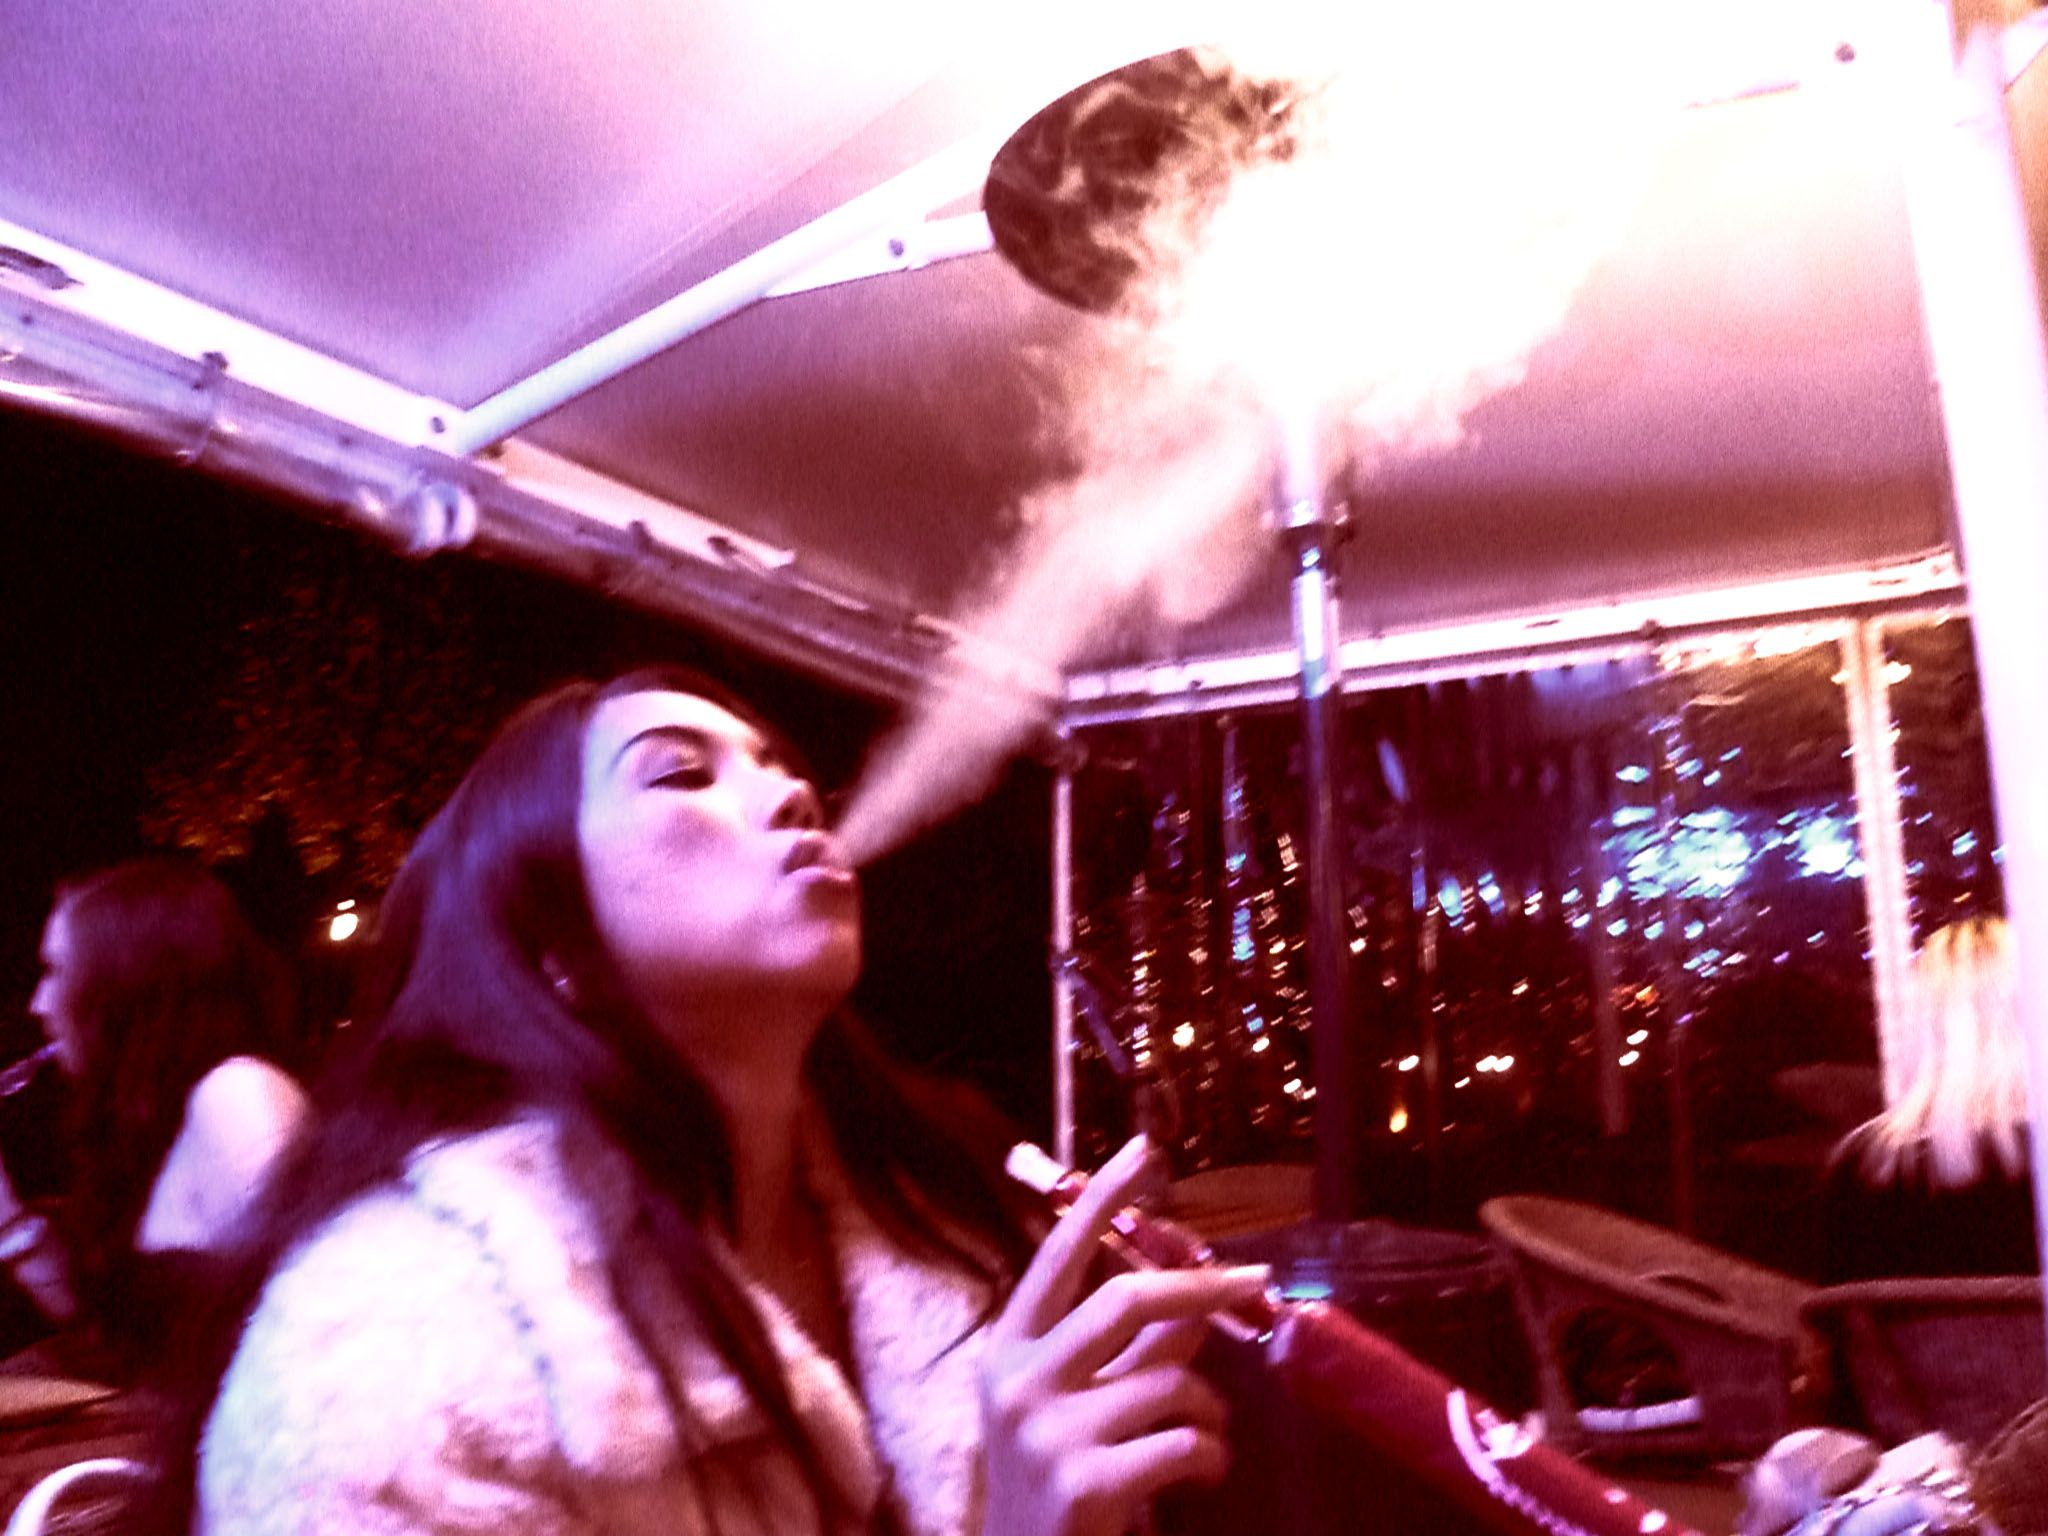 Alert: Smoking Hookah (Shisha) For An Hour Might Equal Smoking 100 Cigarettes